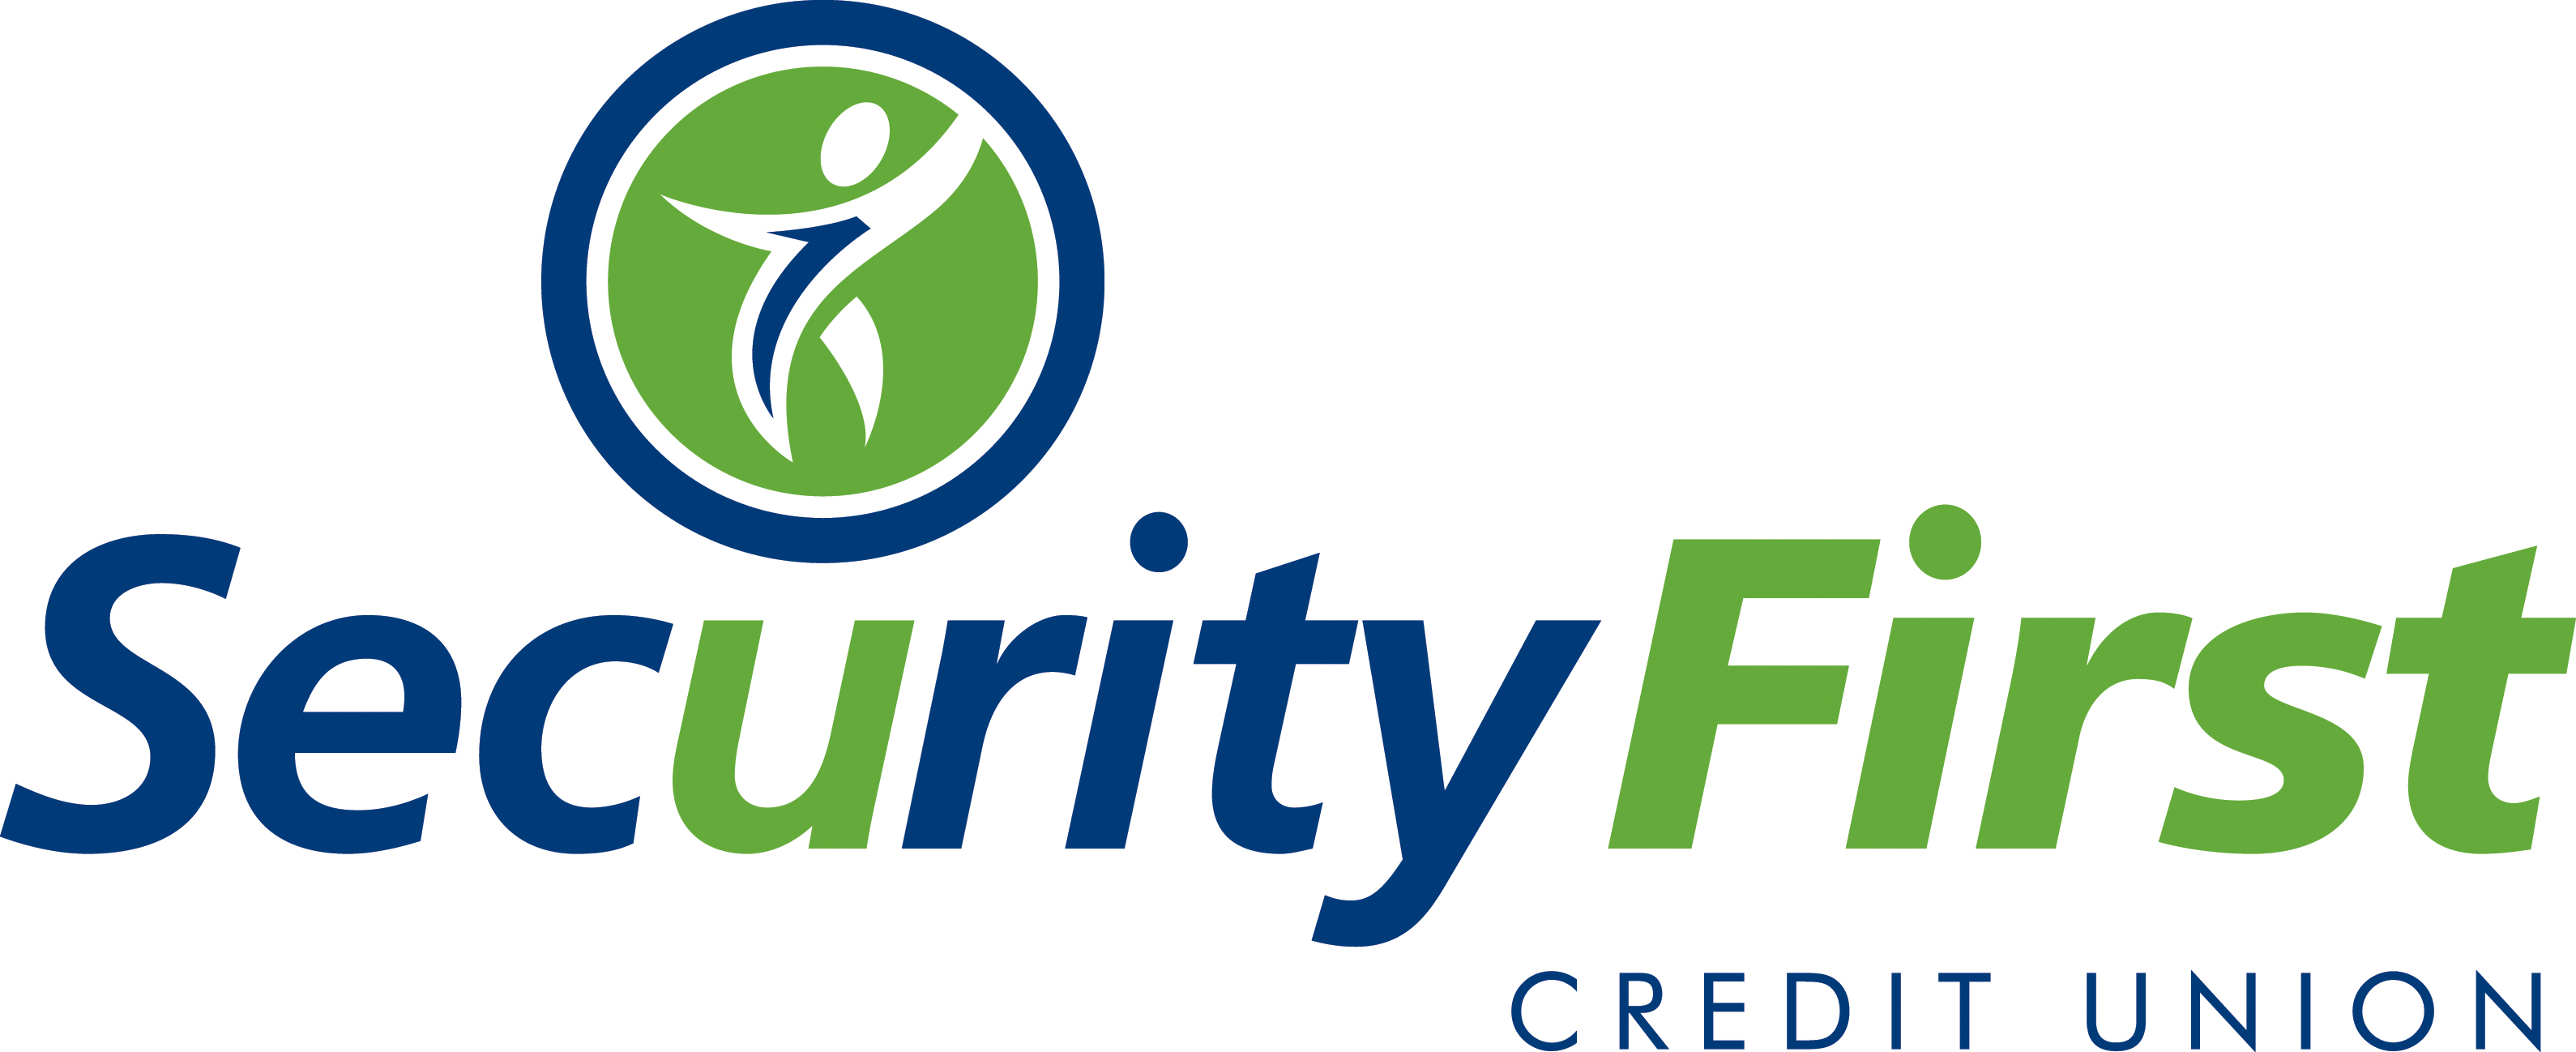 Security-First-Logo-PMS.jpg